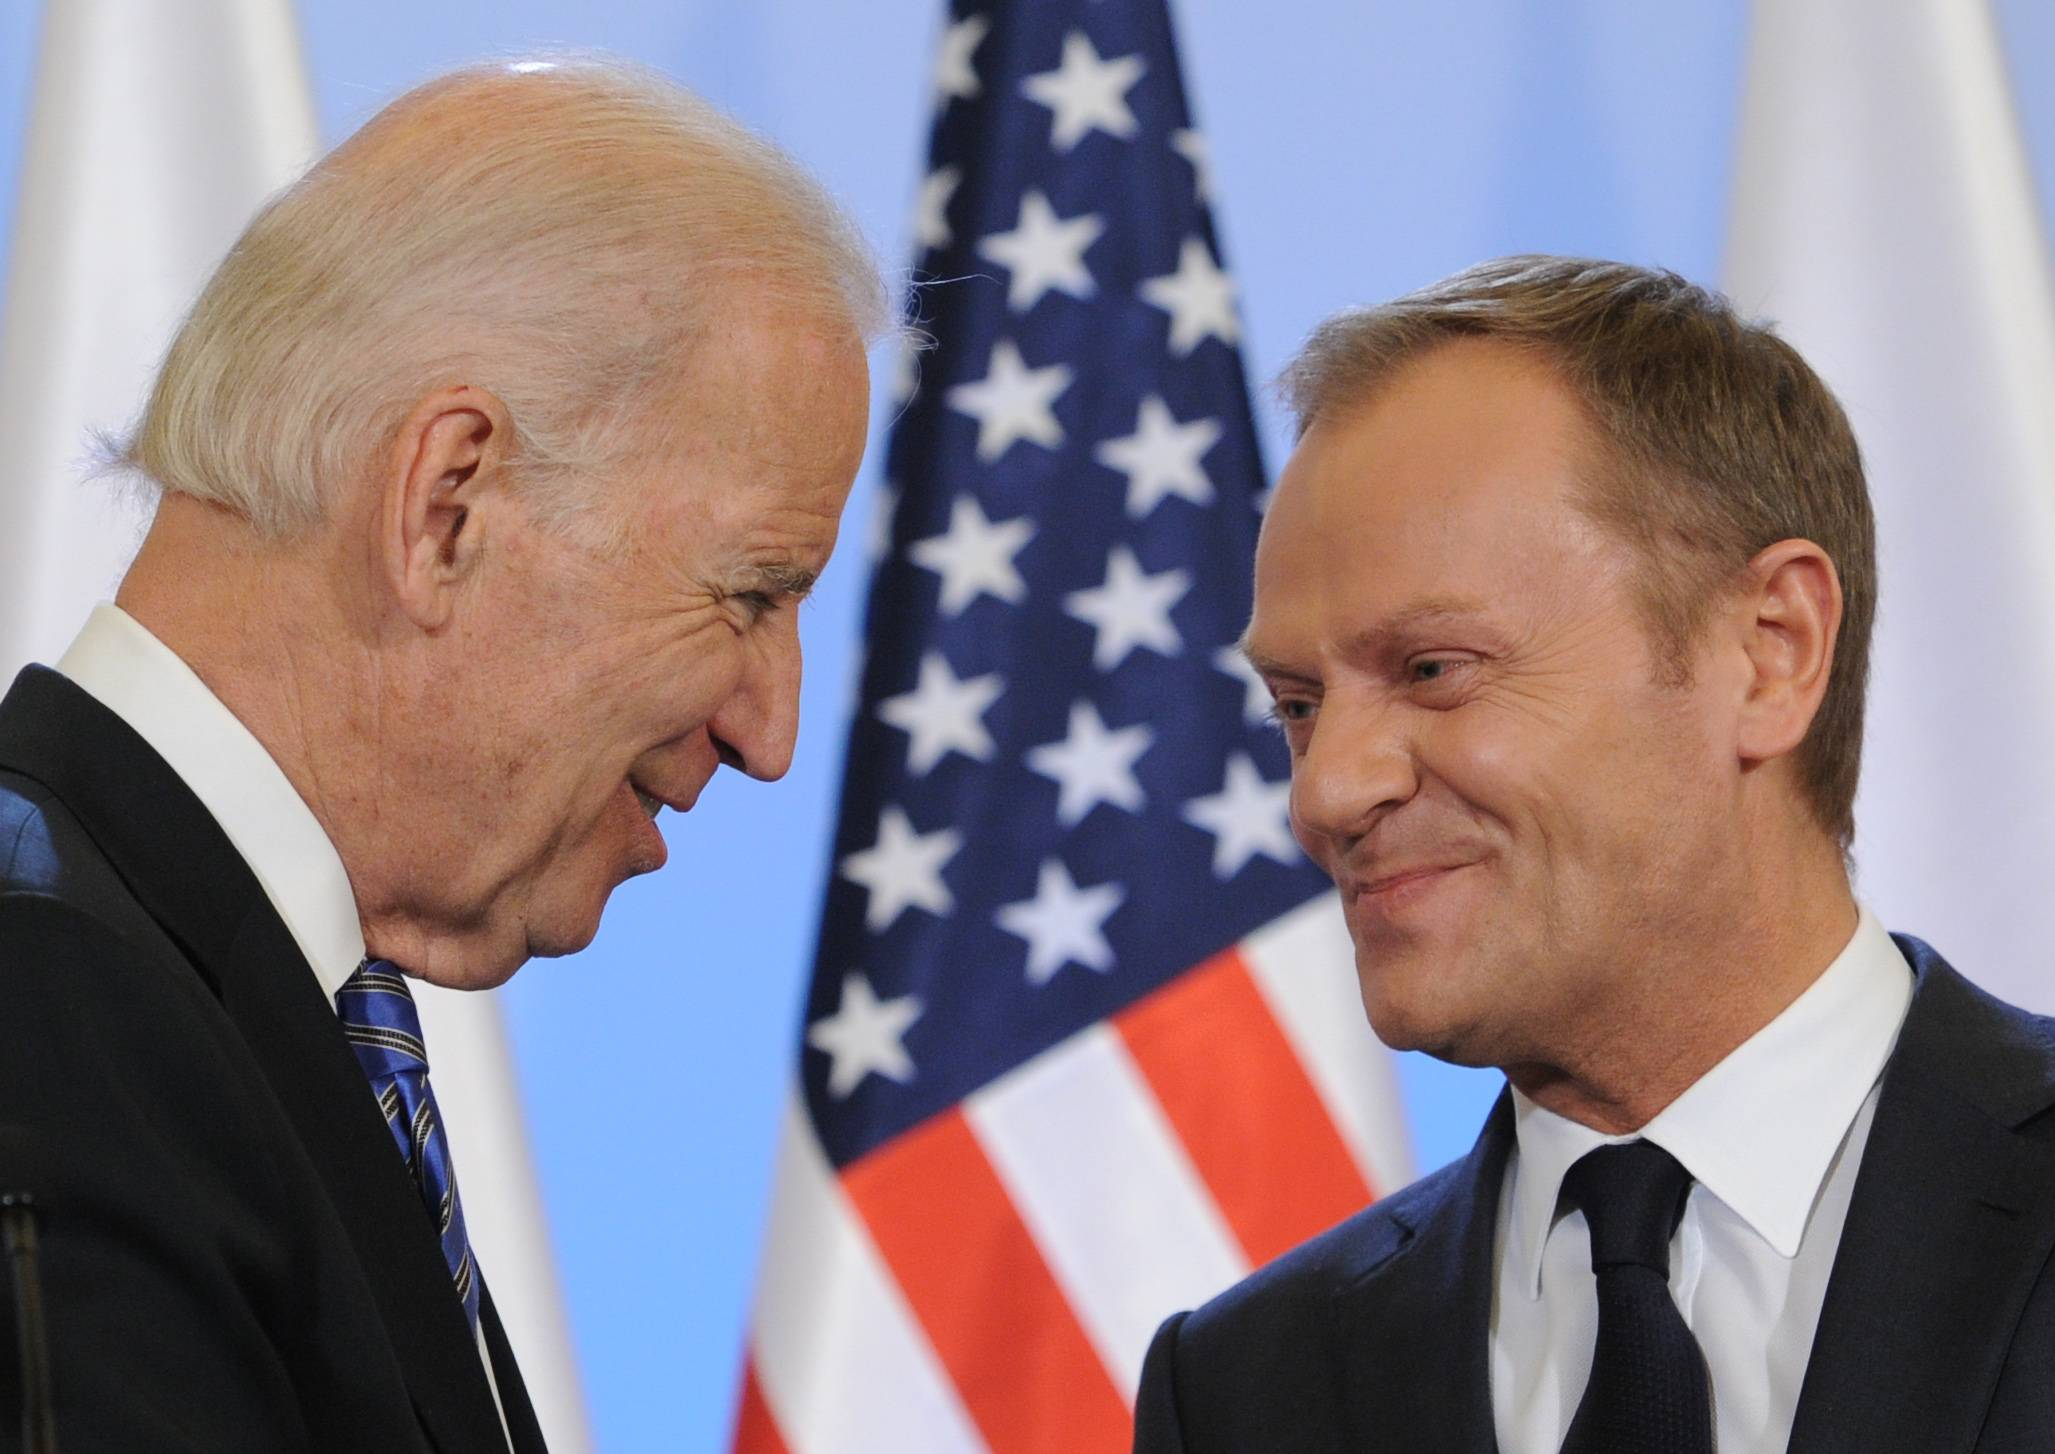 U.S. Vice President Joe Biden, left, and Polish Prime Minister Donald Tusk met for talks in Warsaw Tuesday, a few hours after Russian President Vladimir Putin approved a draft bill for the annexation of Crimea.